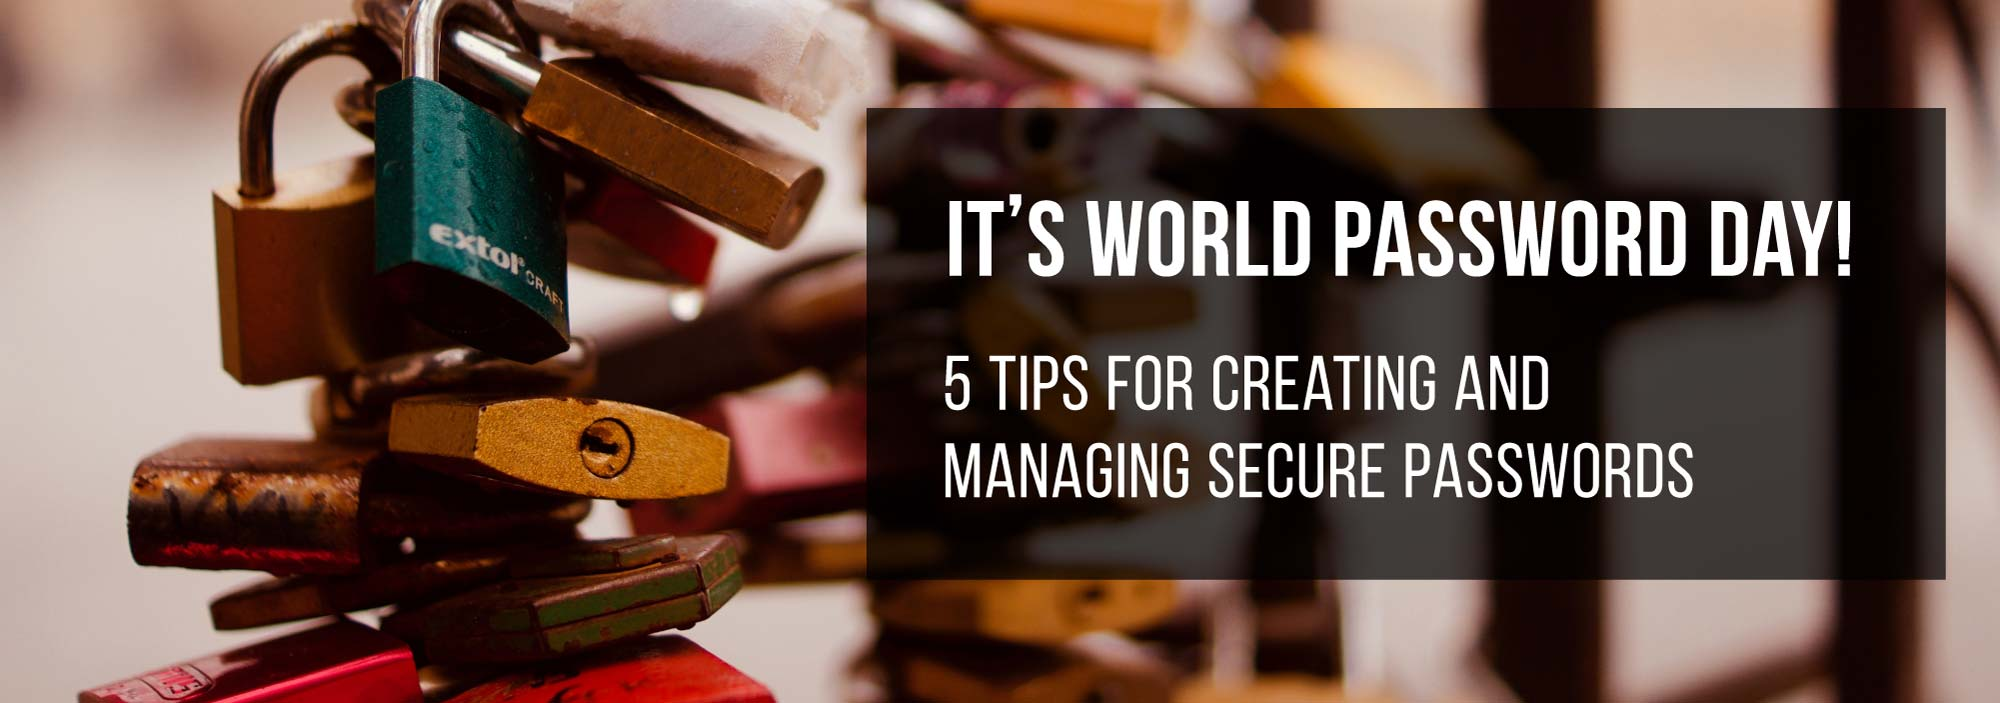 It's World Password Day! 5 Tips for Creating and Managing Secure Passwords